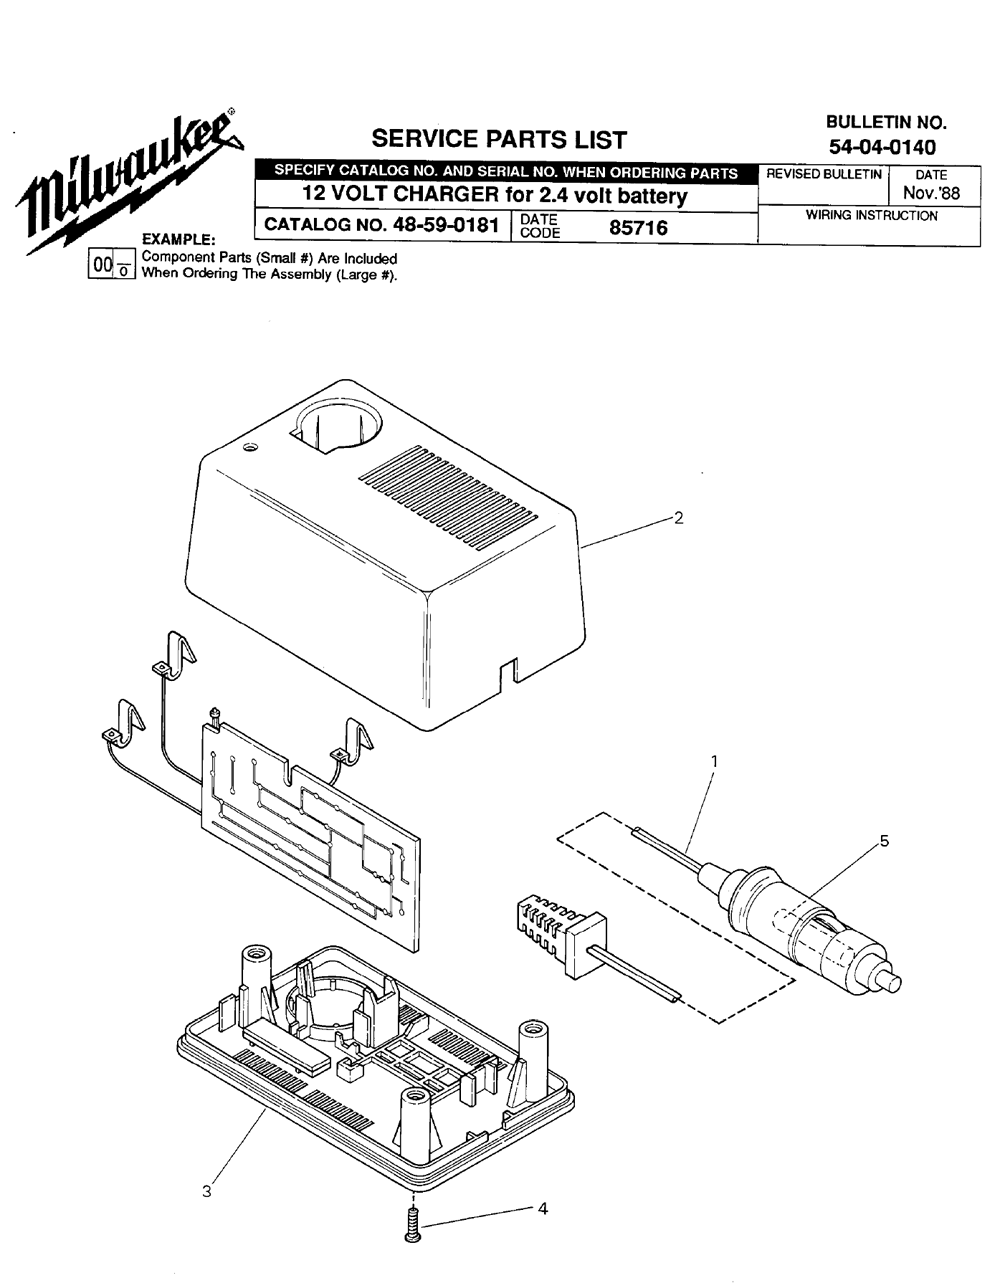 Buy Milwaukee 48 59 0181 85716 12 Volt Charger For 2 4